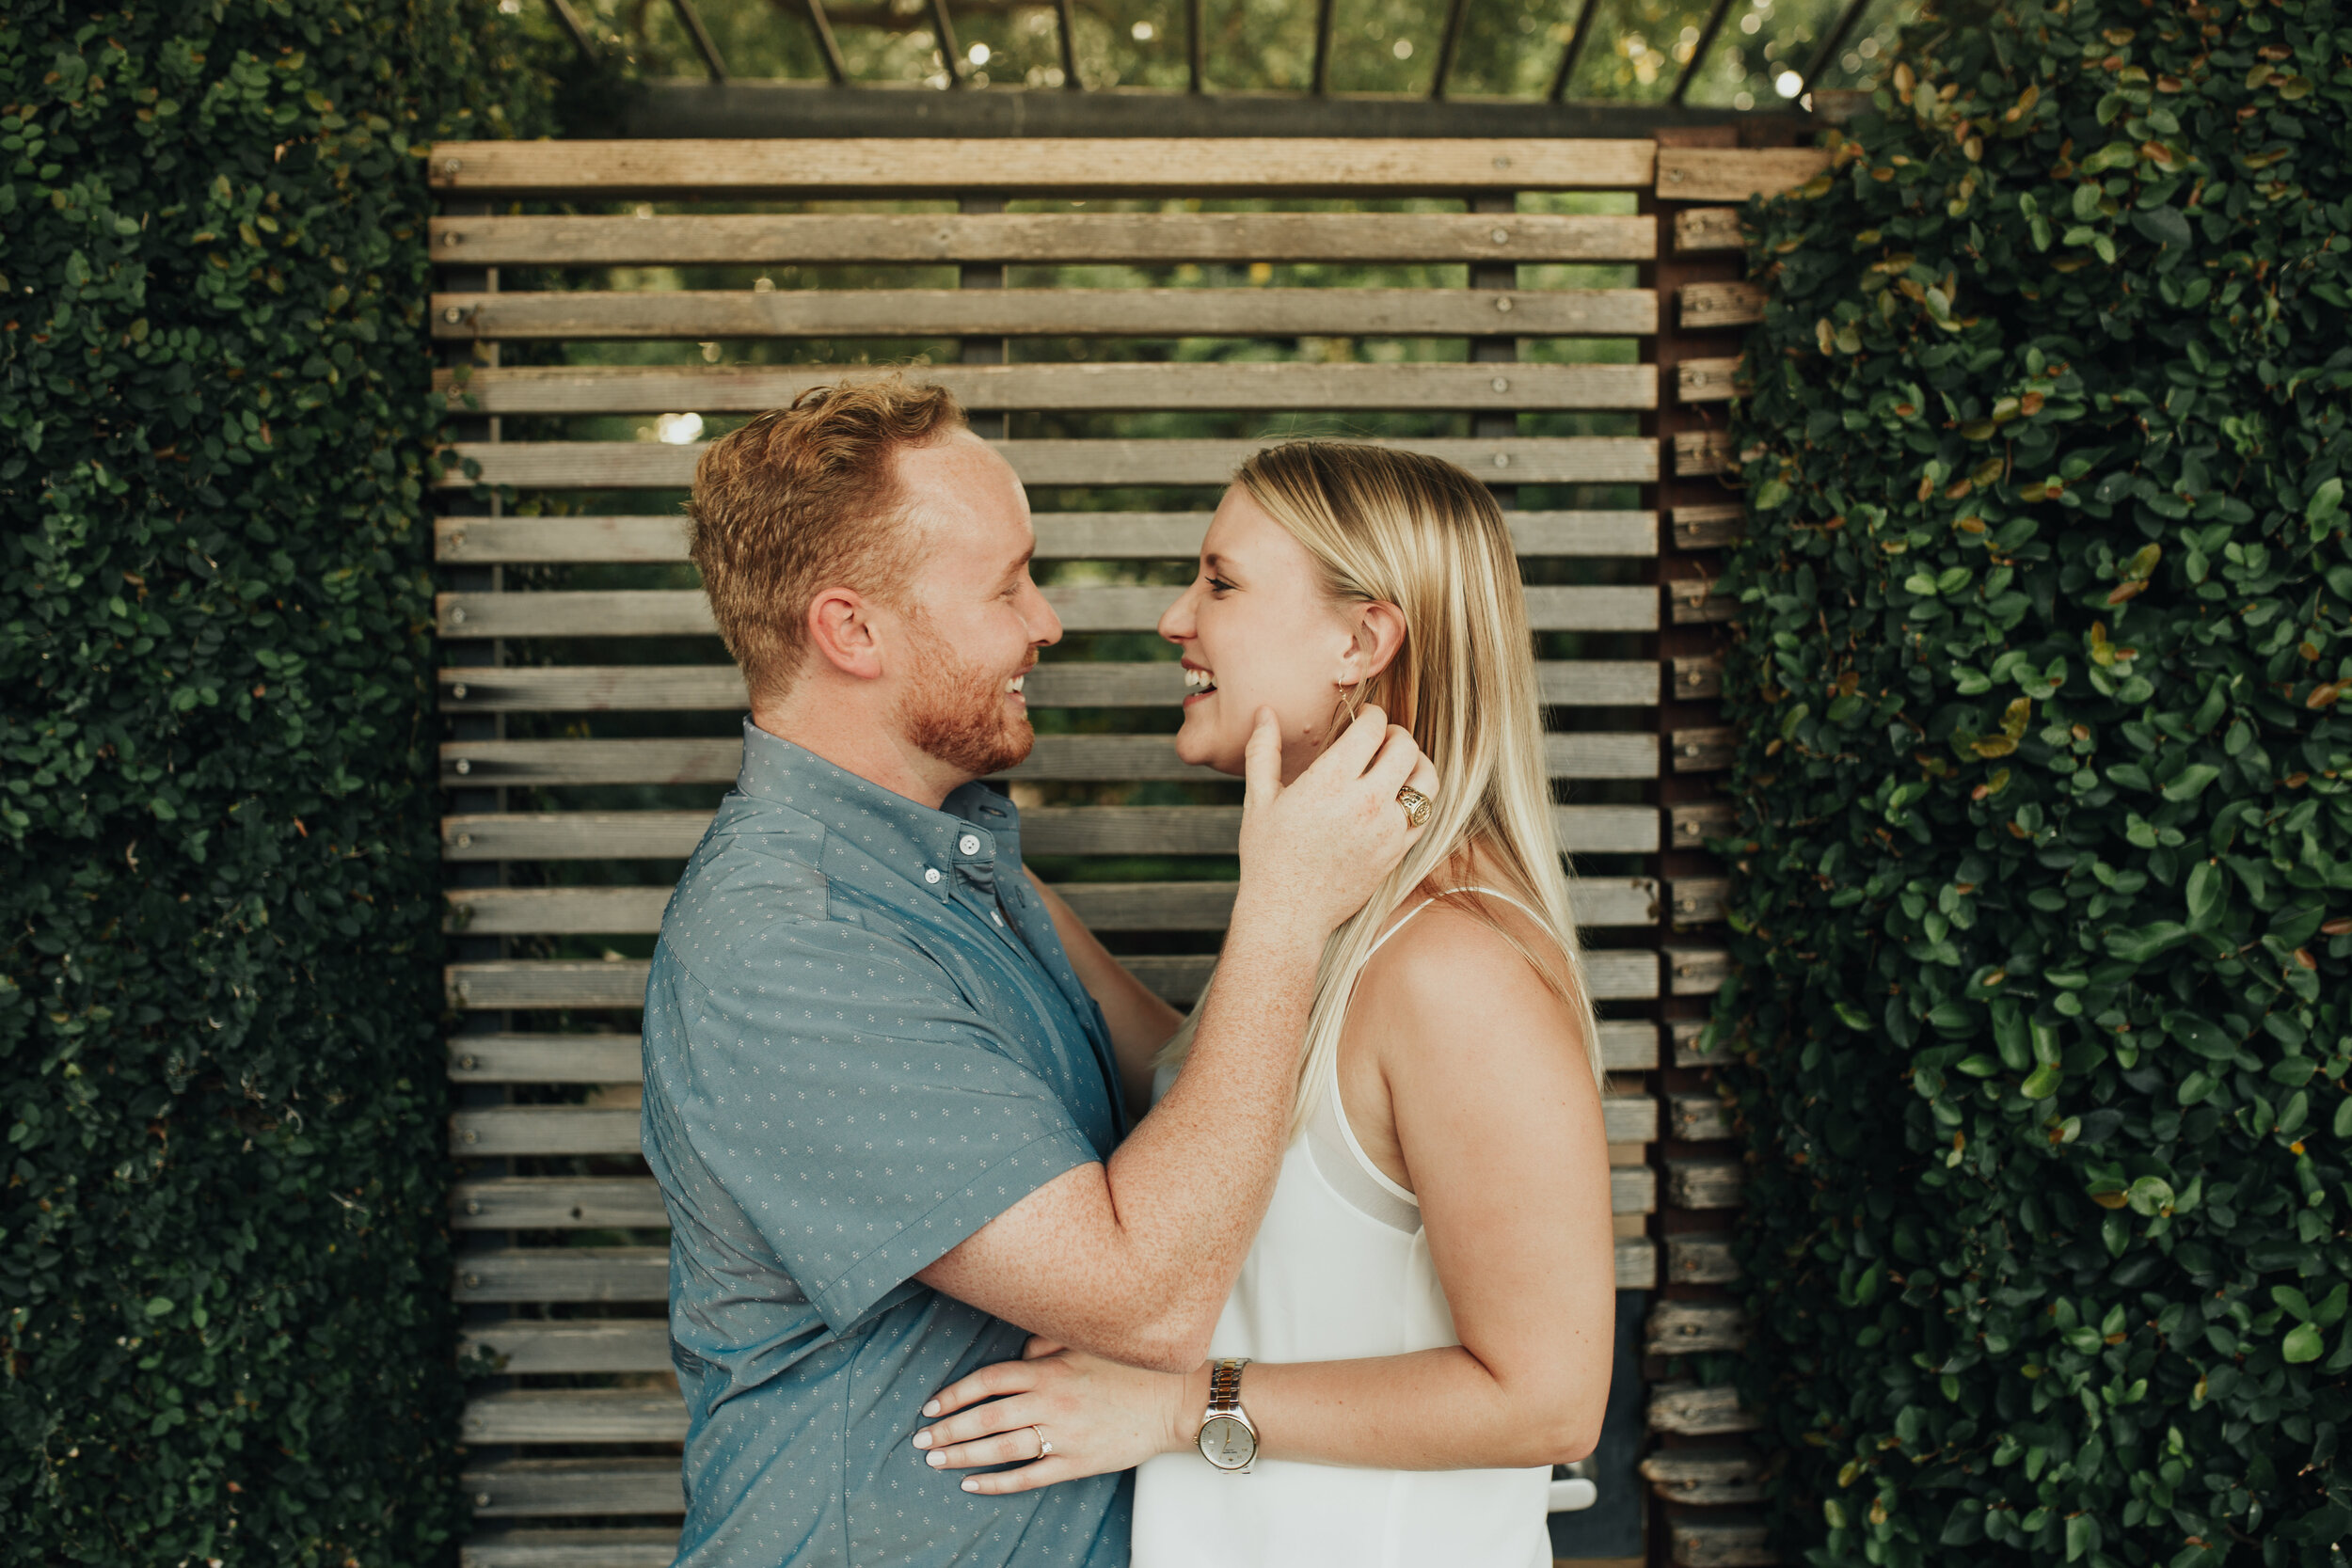 Leanna + Sam // Engagment Session  South Congress Ave. Austin Texas ↠